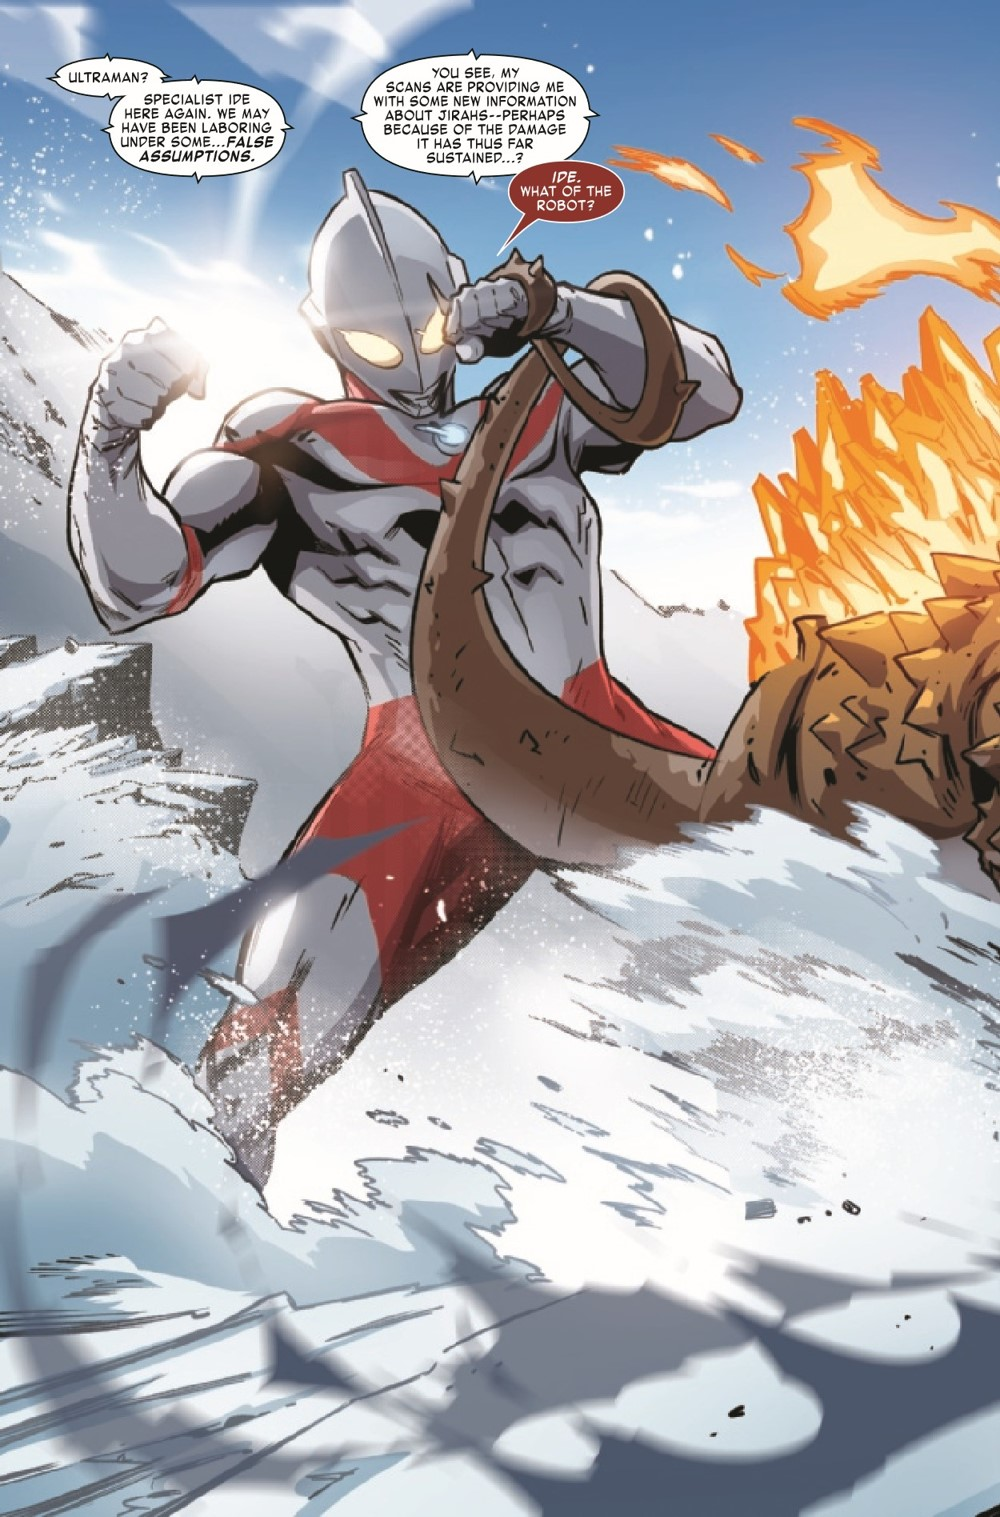 ULTRAMANTRIALS2021005_Preview-4 ComicList Previews: THE TRIALS OF ULTRAMAN #5 (OF 5)